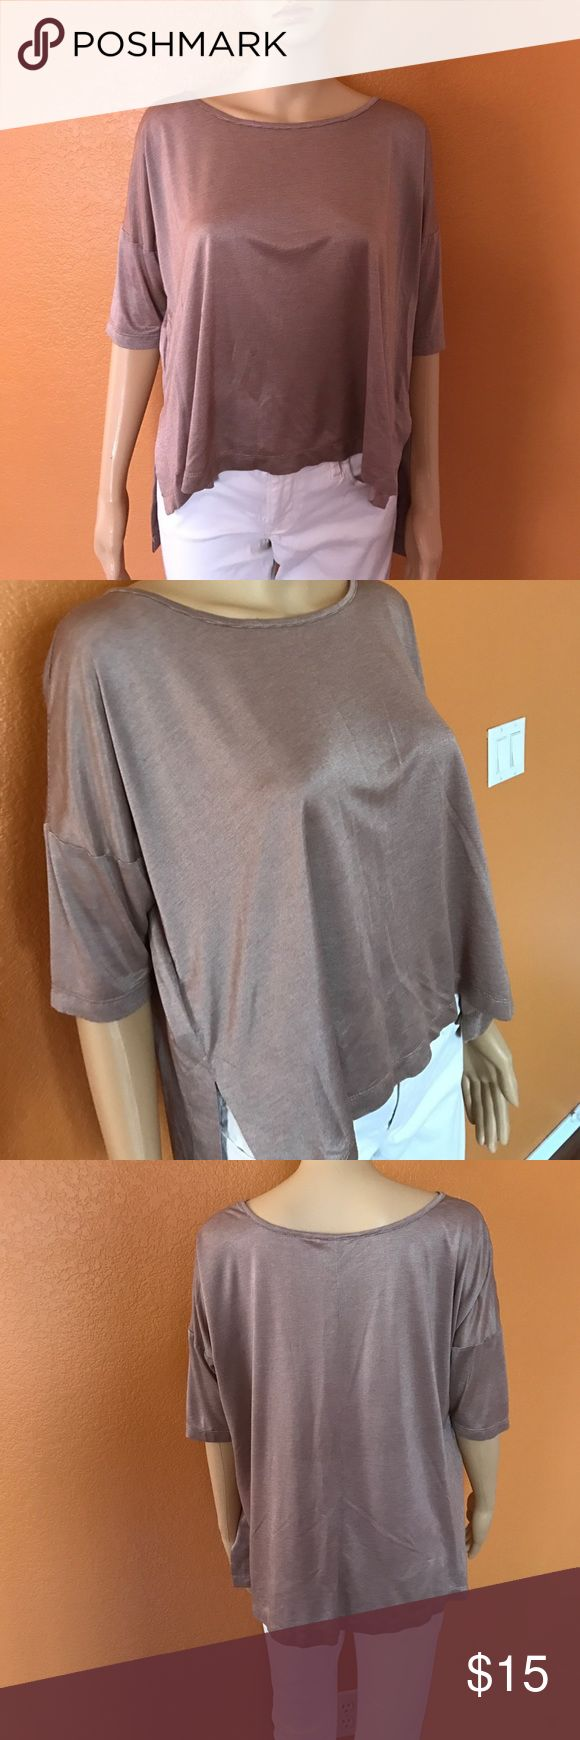 Bcbgeneration Top Cappuccino color, small size top looks silky it's really comfy and it's high low. BCBGeneration Tops Tees - Short Sleeve